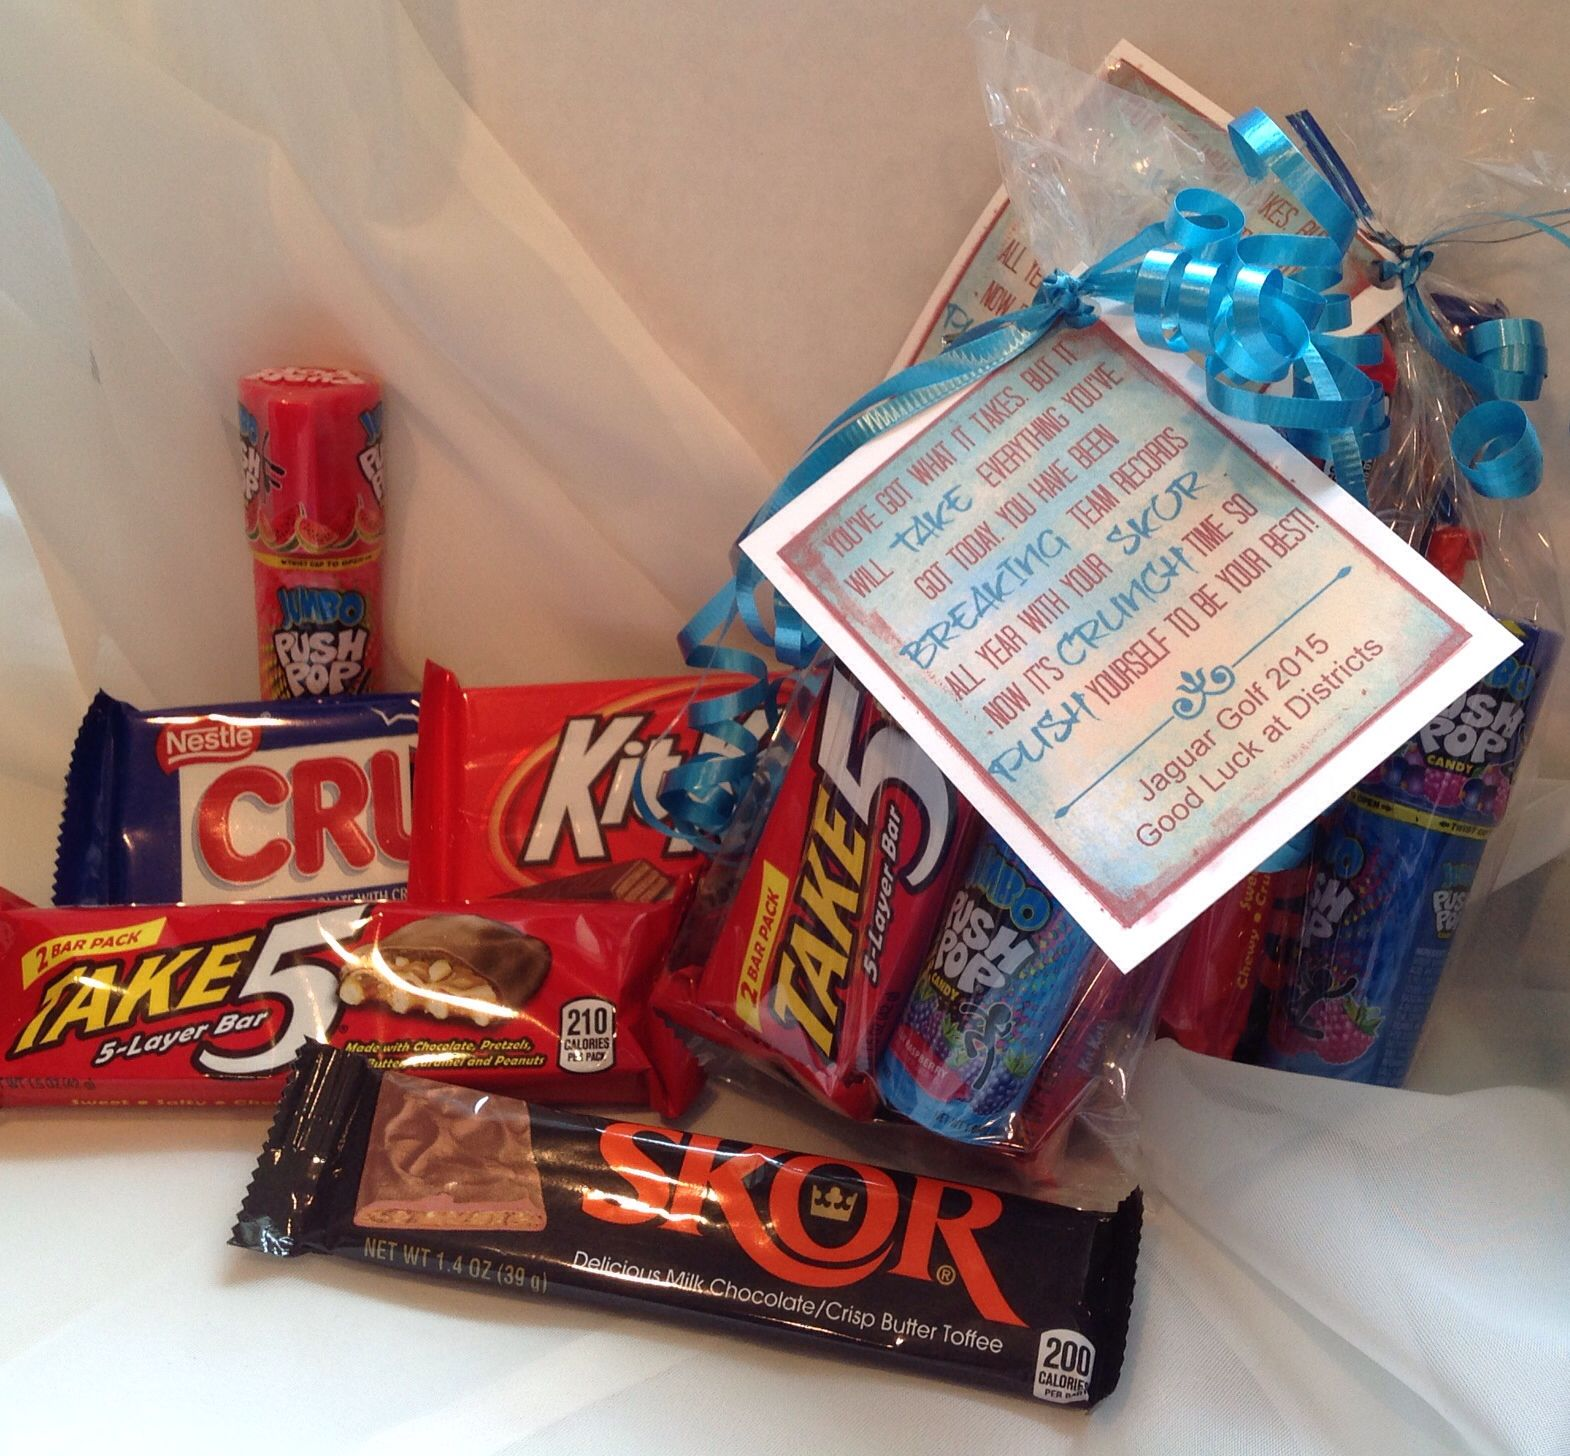 golf favor goodie bag good luck  candy bars  crunch kitkat skor push pop